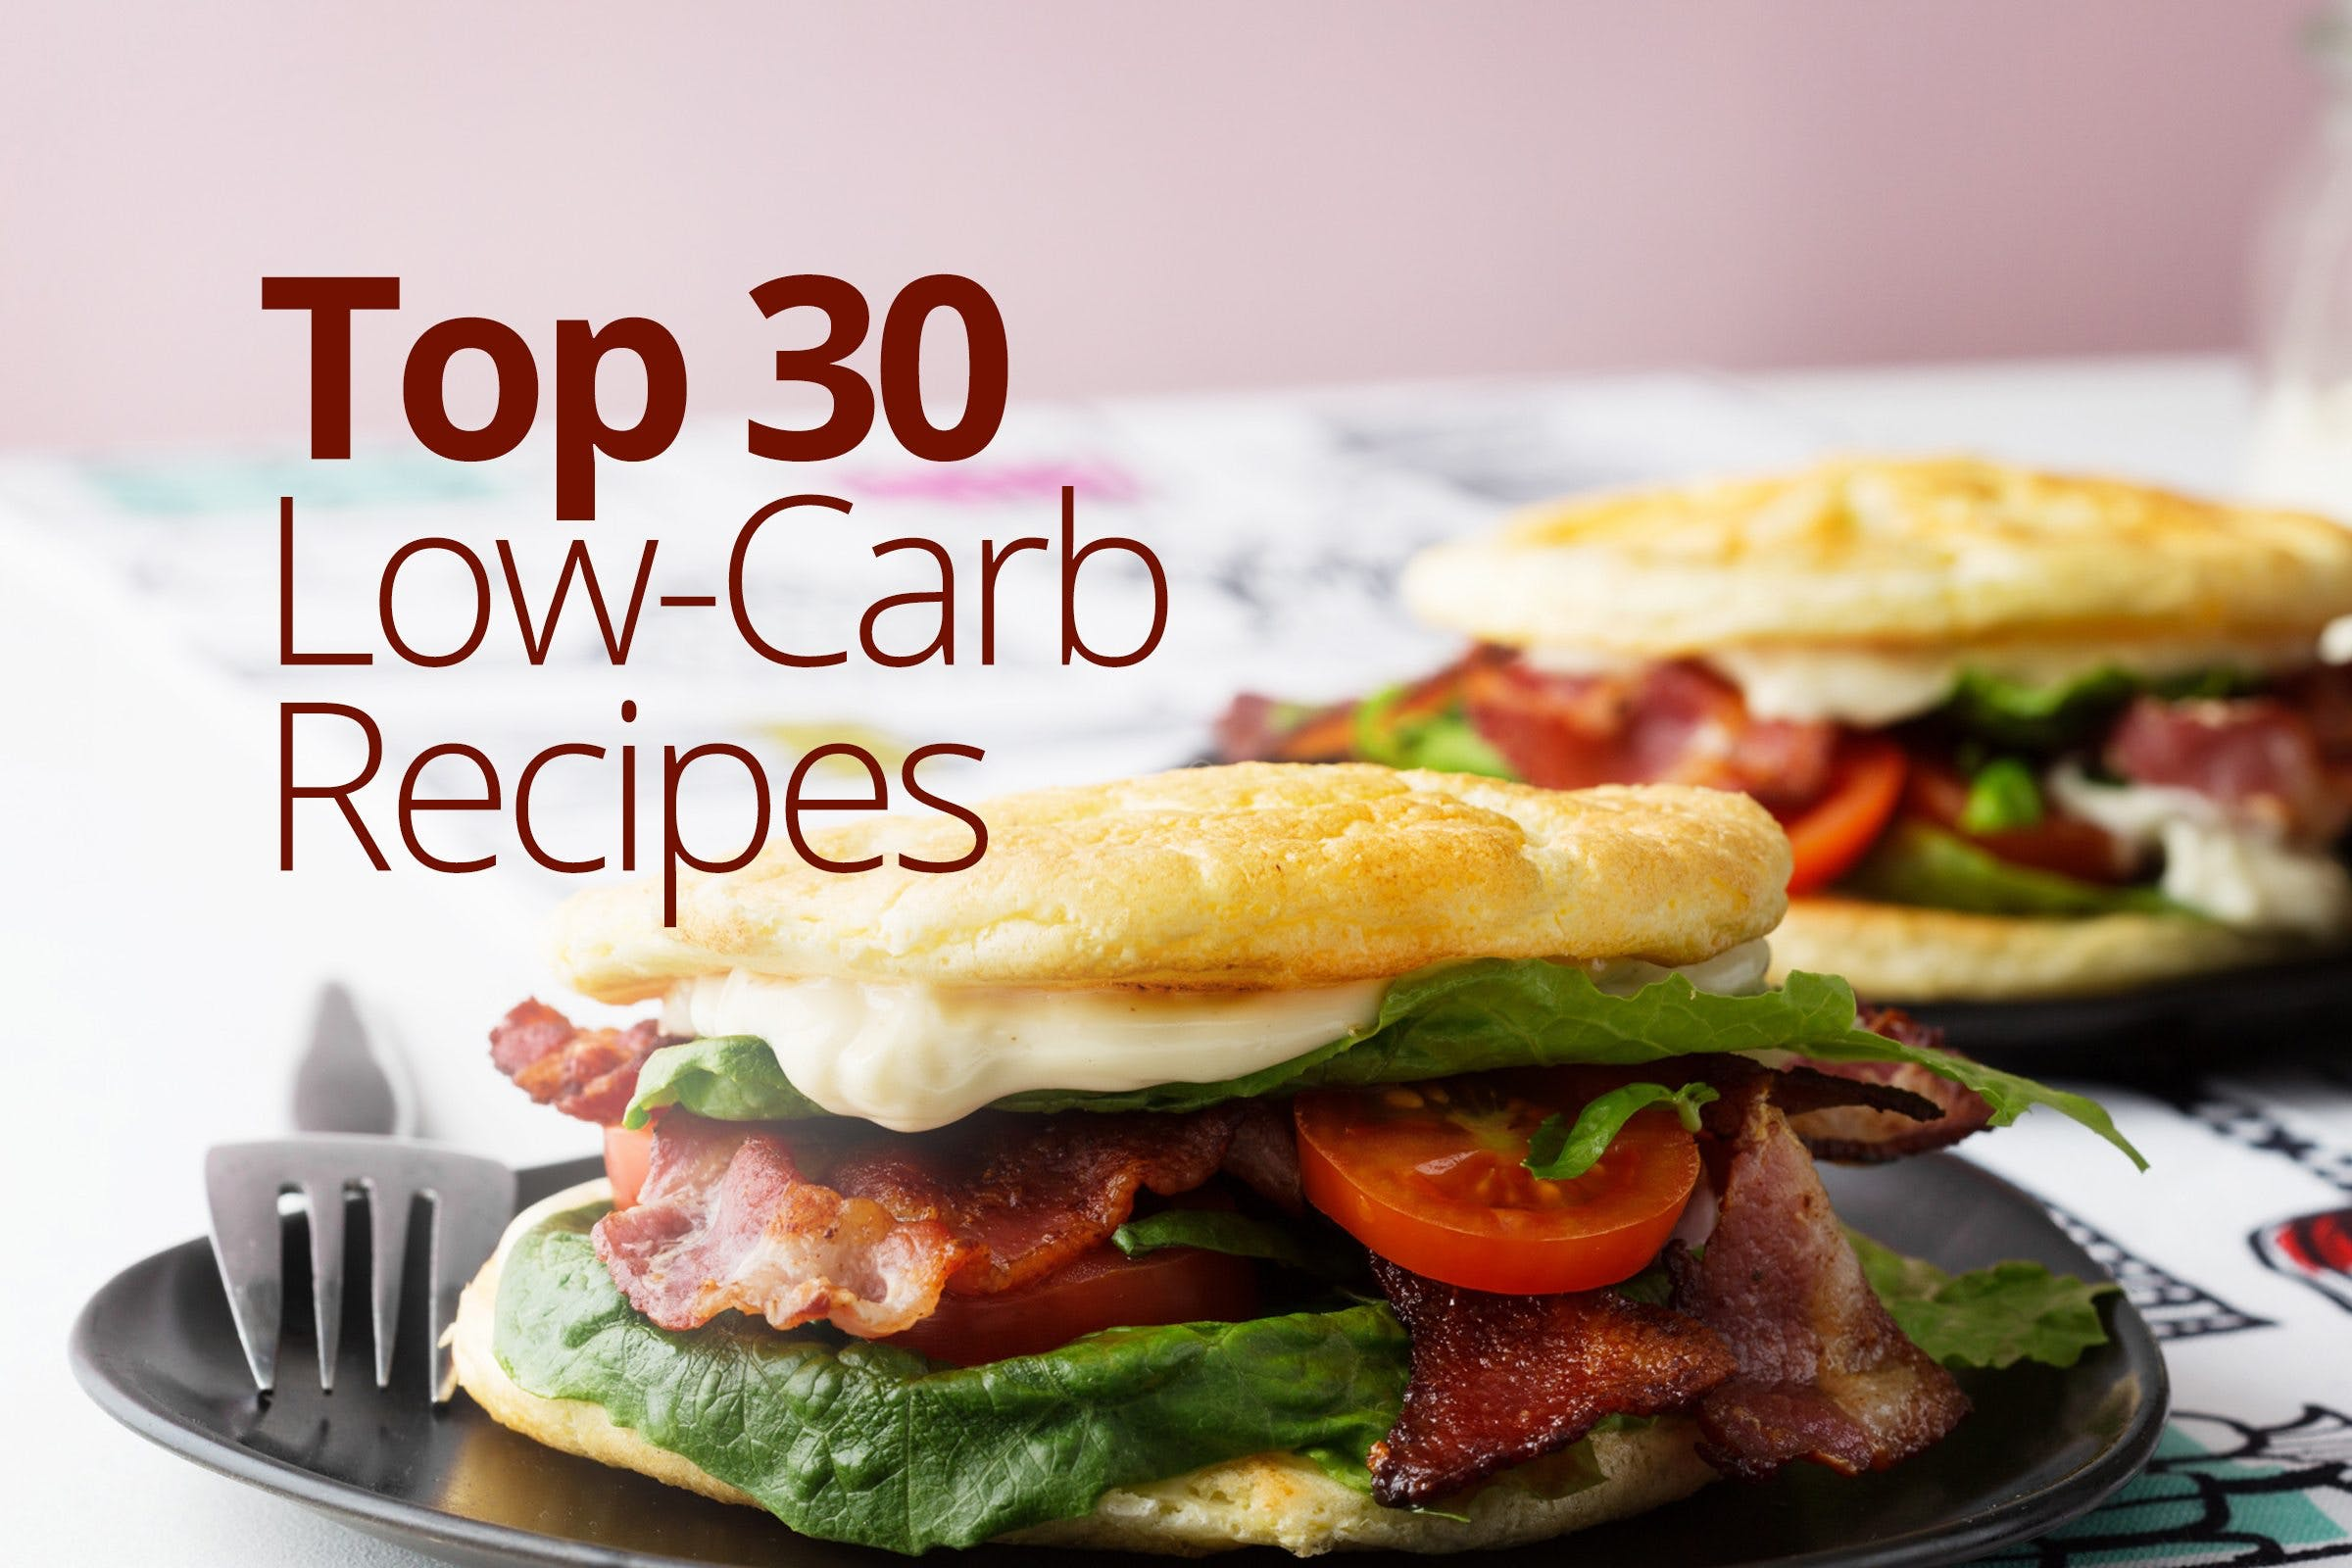 Top 30 Low-Carb Recipes - Simple & Delicious Inspiration